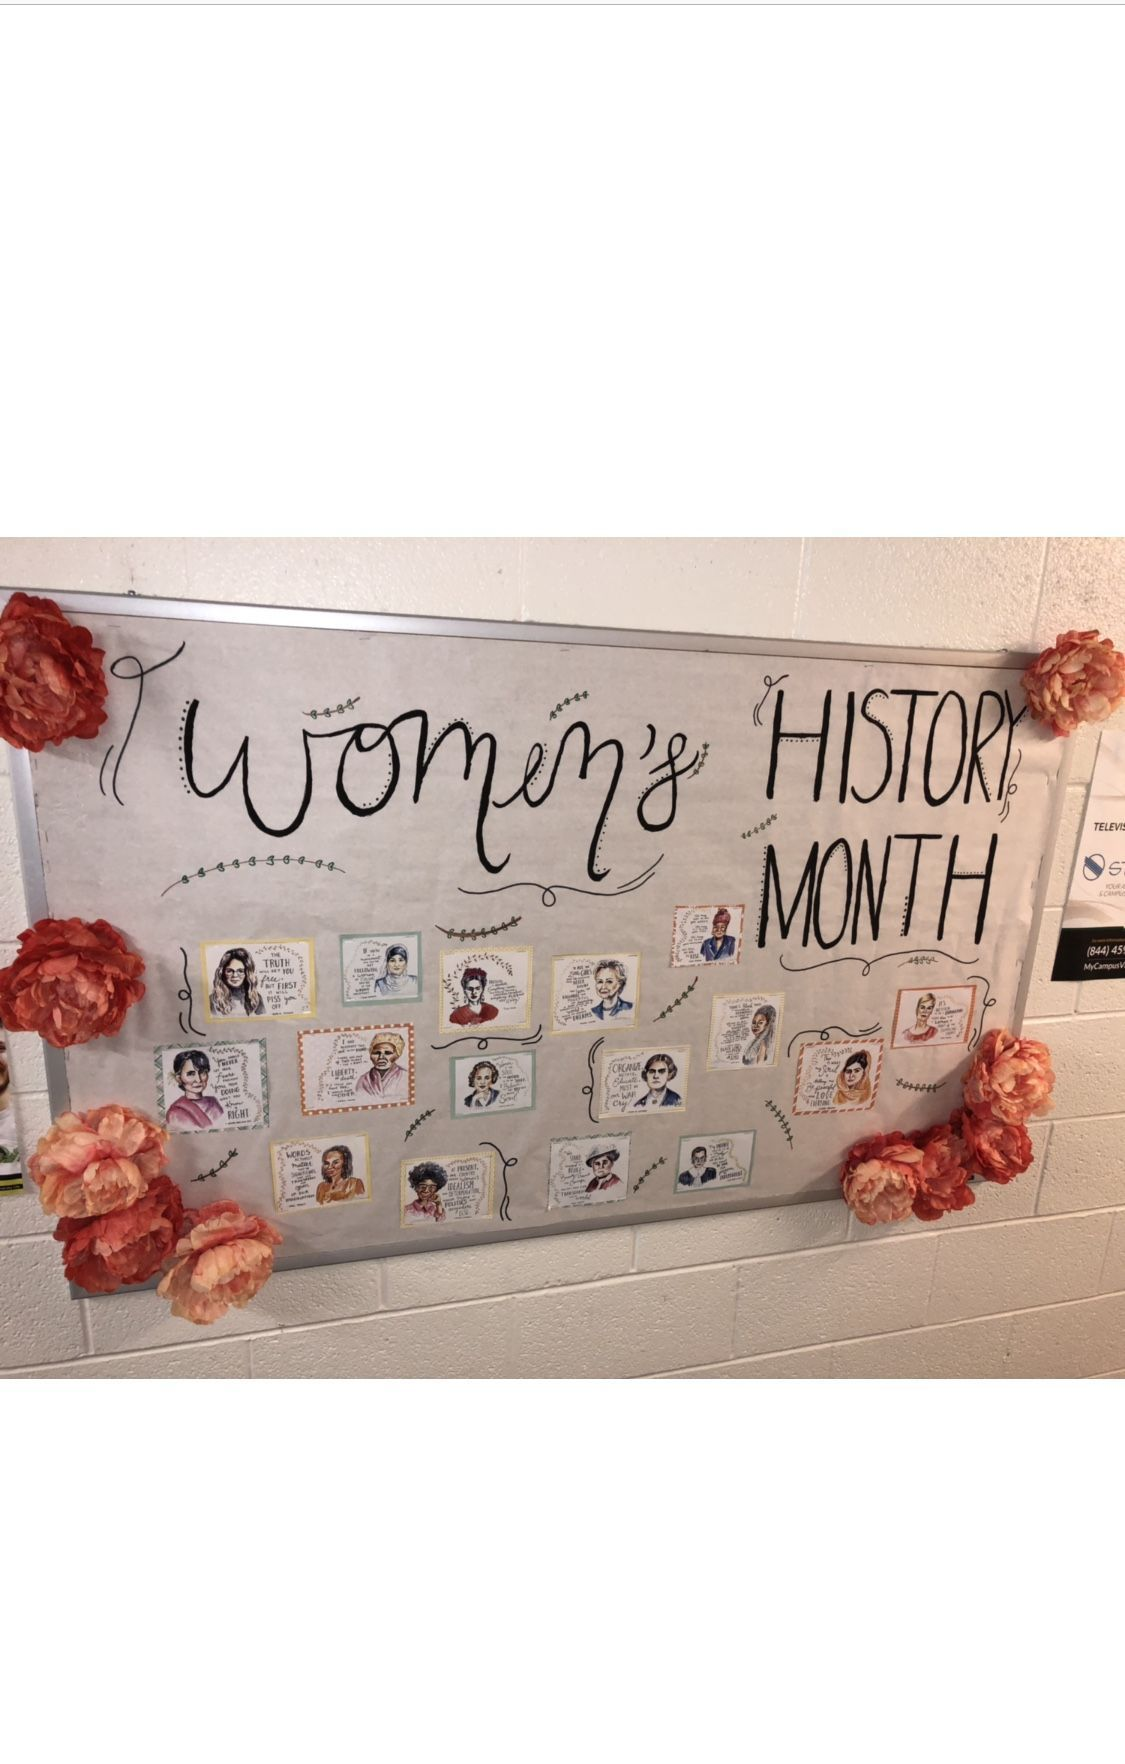 RA bulletin board March International Women's Month #rabulletinboards RA bulletin board March International Women's Month #rabulletinboards RA bulletin board March International Women's Month #rabulletinboards RA bulletin board March International Women's Month #rabulletinboards